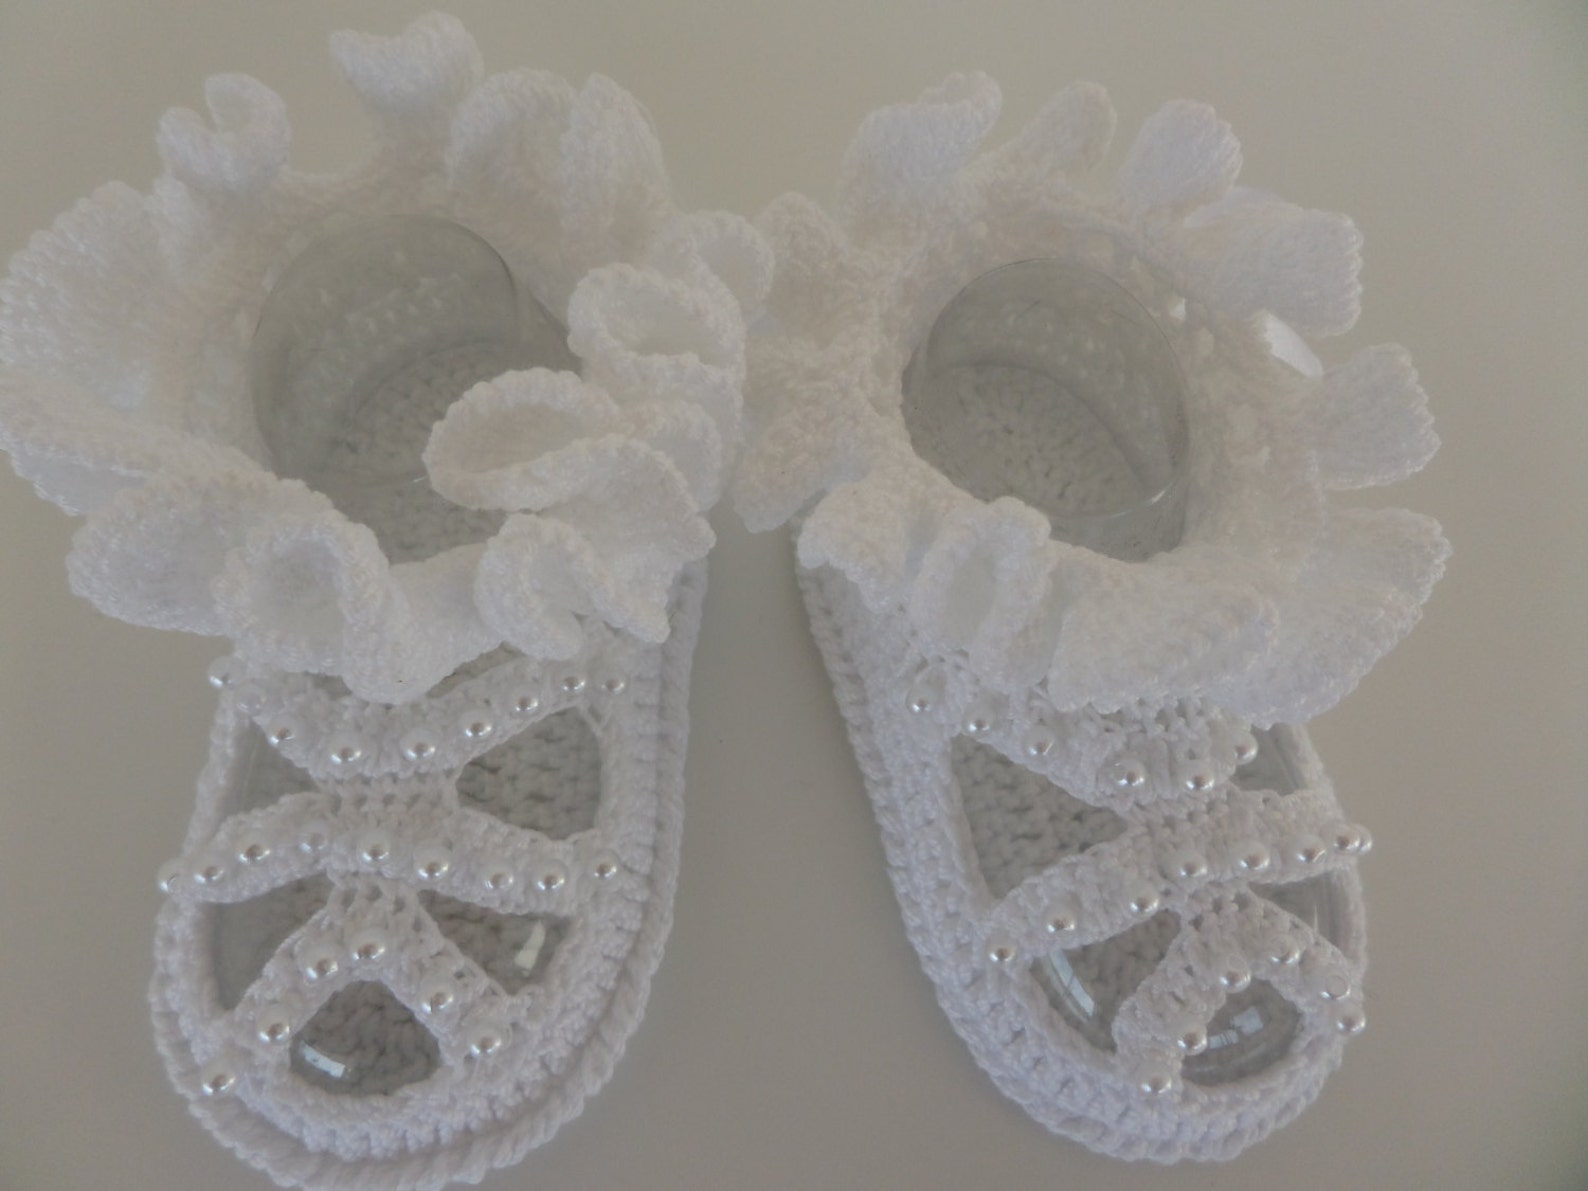 crochet baby booties, baby girl ballet slippers. crochet baby shoes for newborn to 06 months.